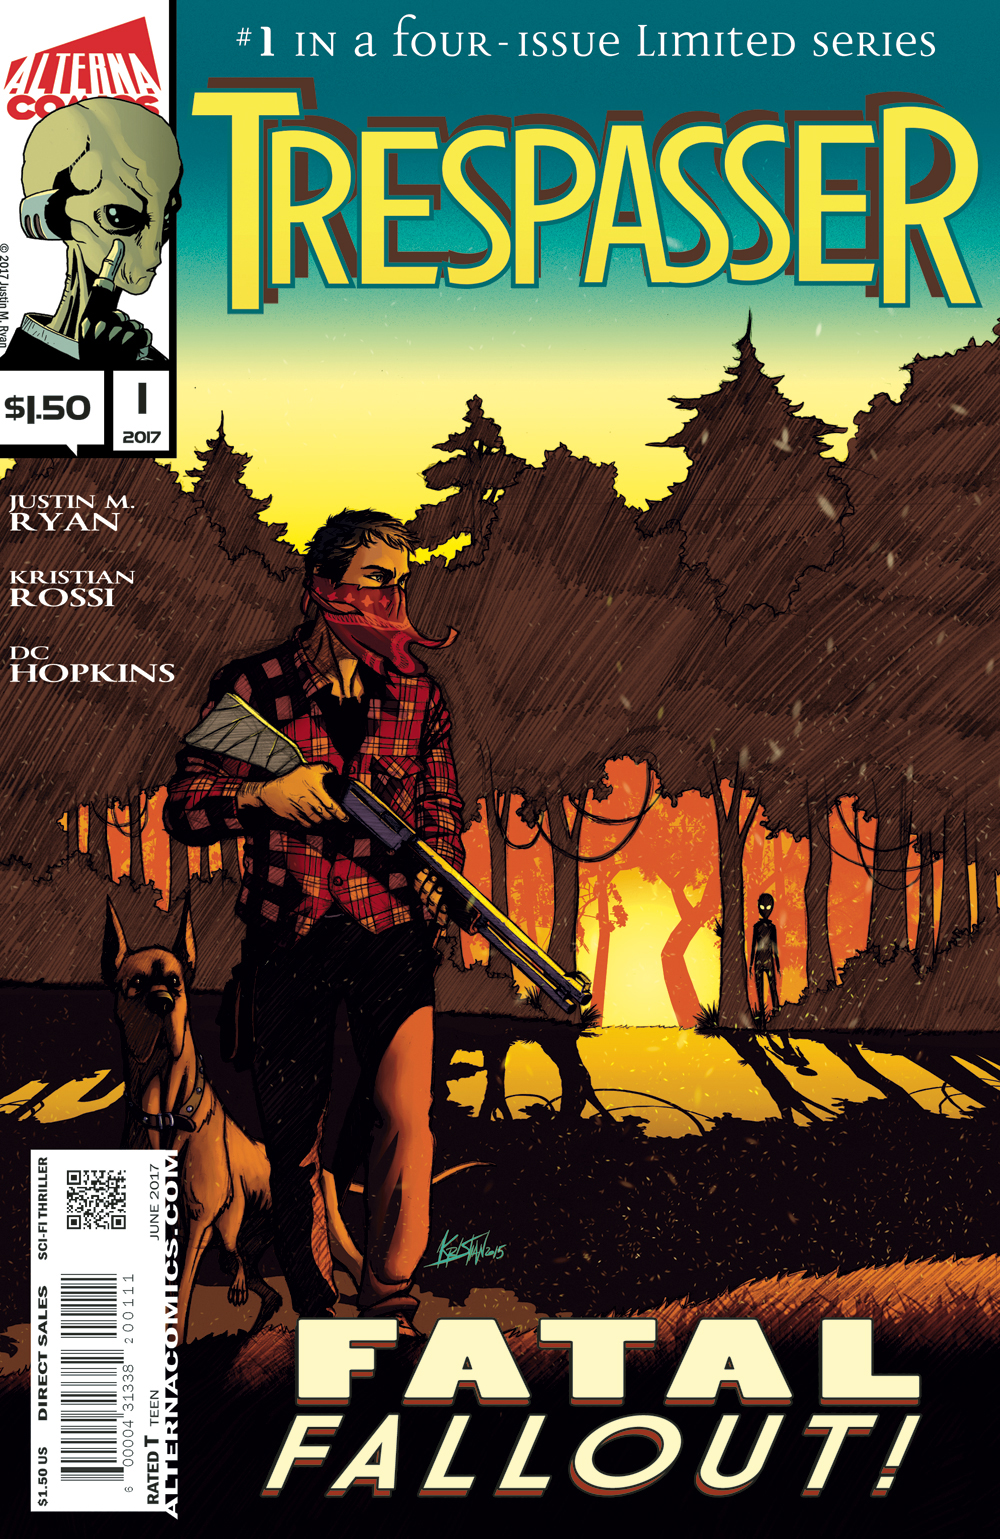 Everything Ends this December in Alterna Comics' TRESPASSER